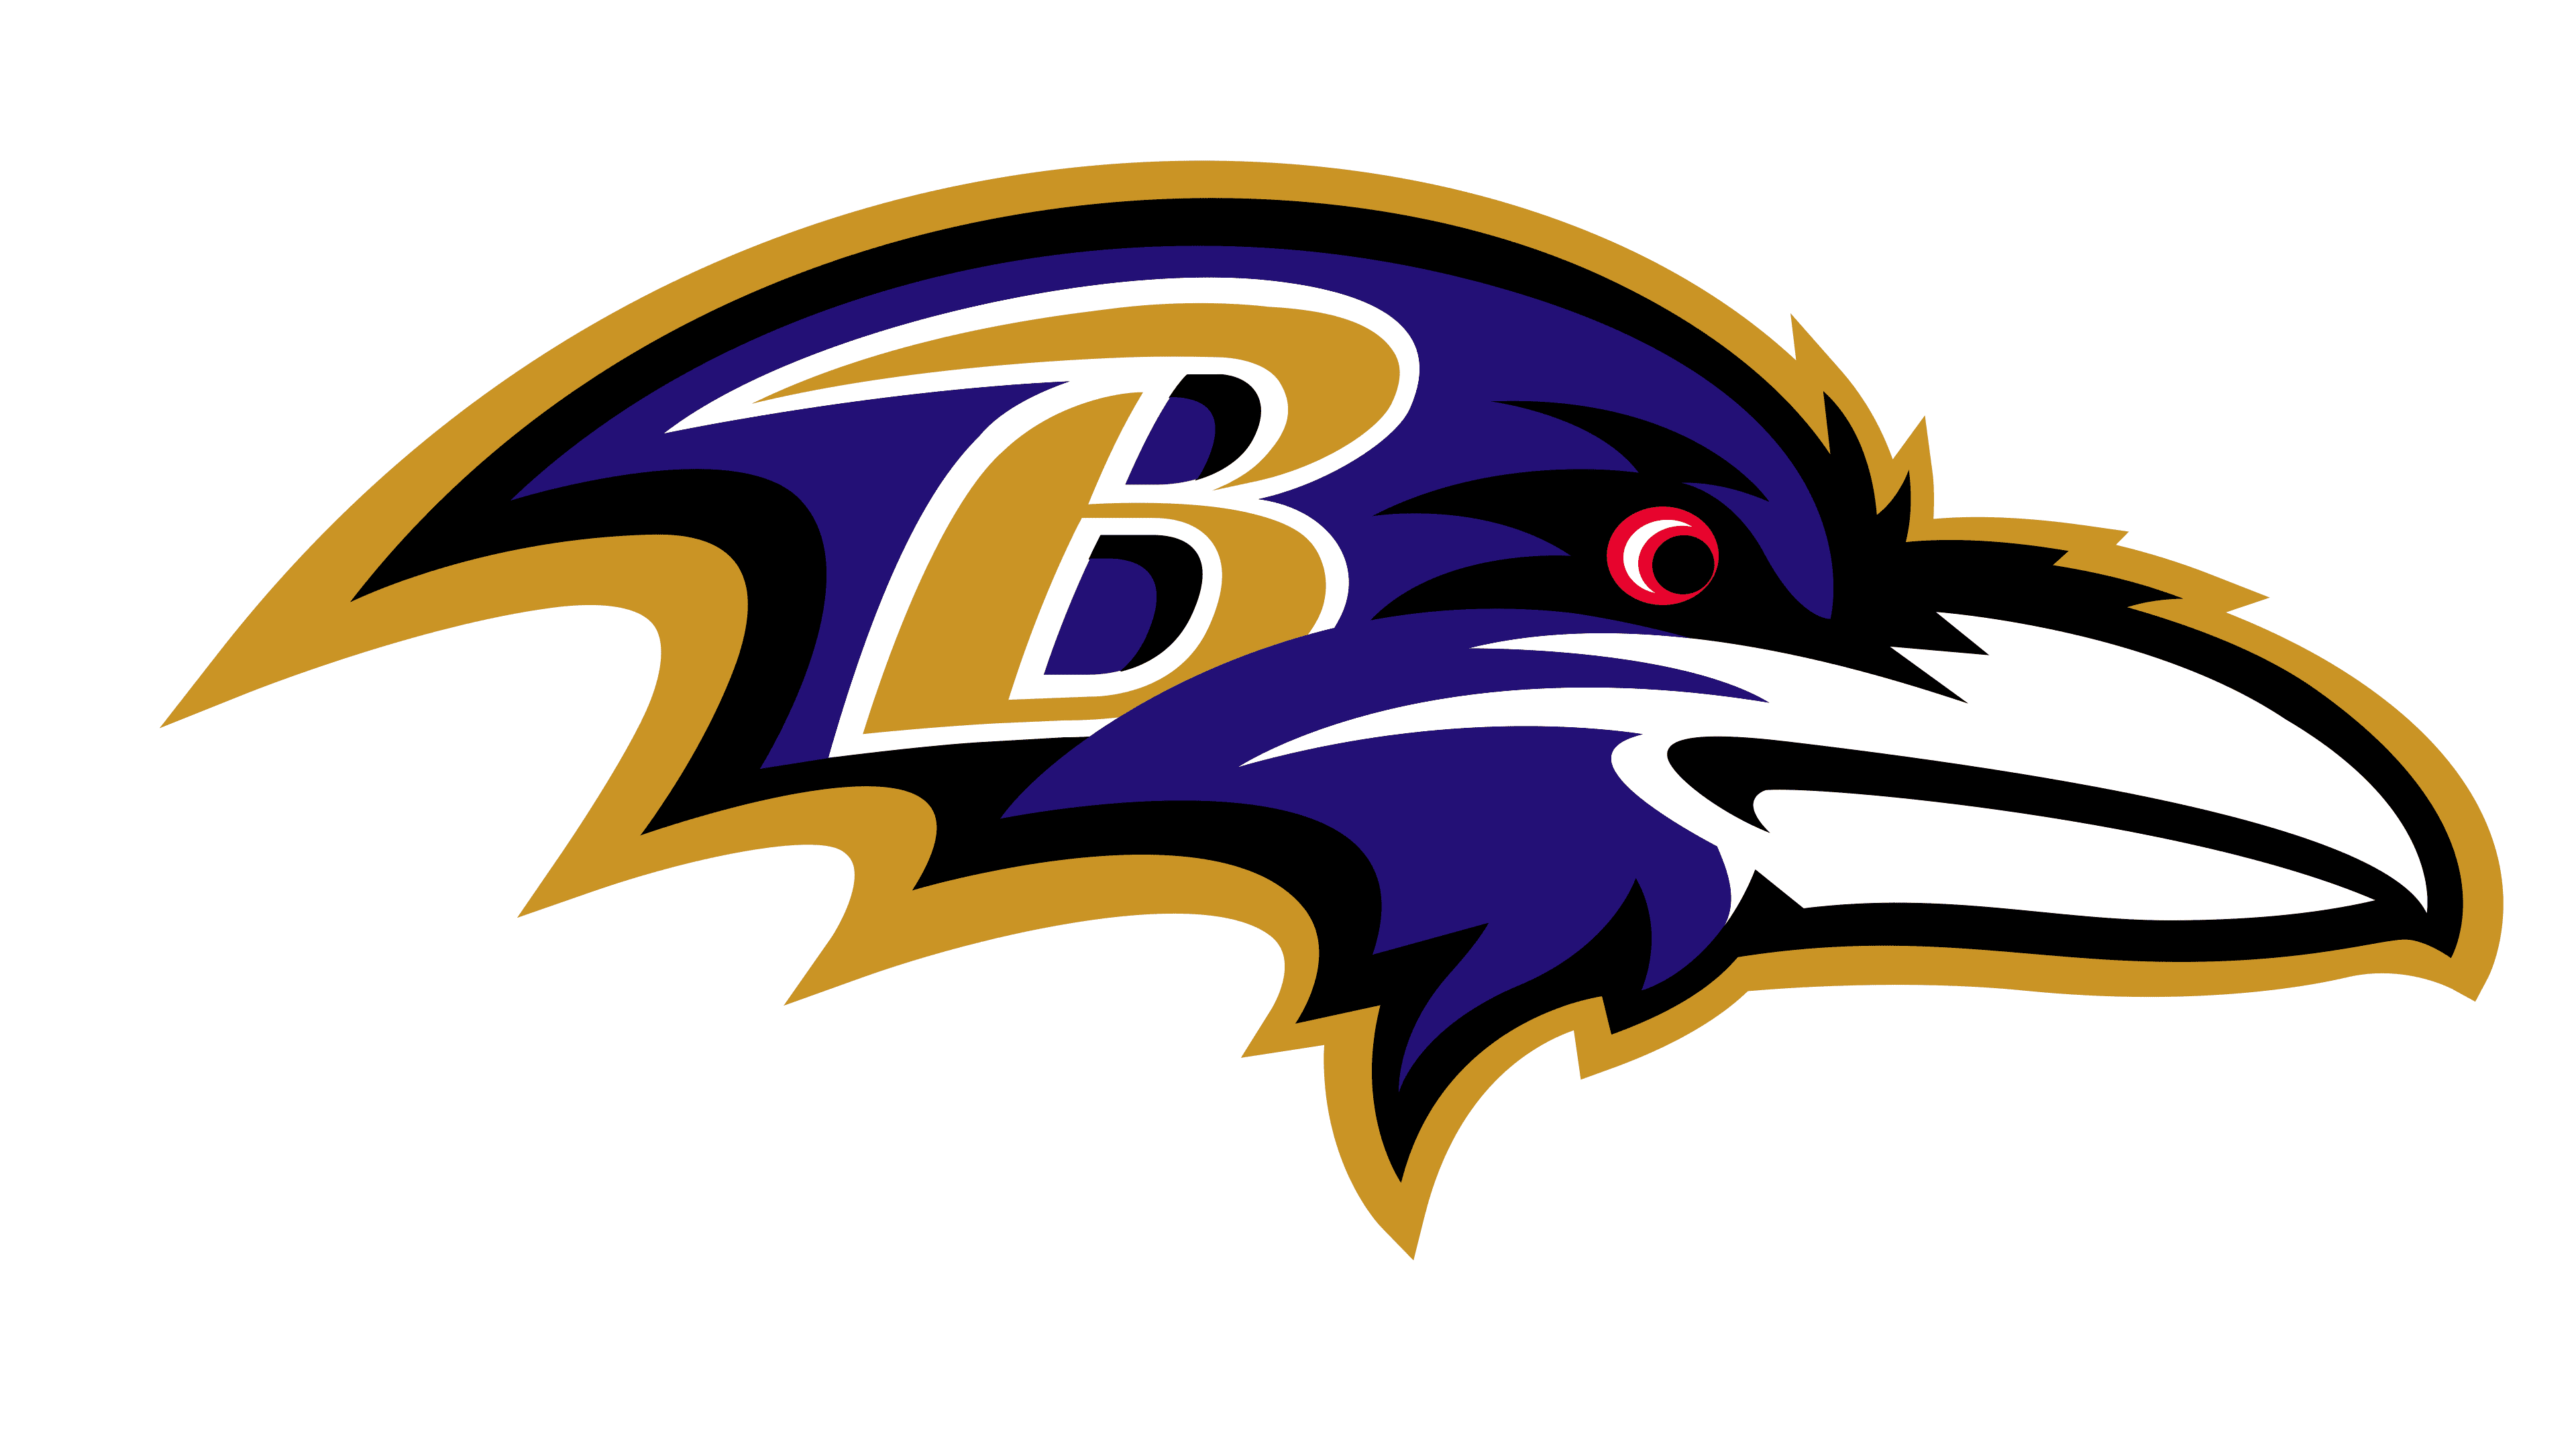 Baltimore Ravens Logo | The most famous brands and company logos in the  world